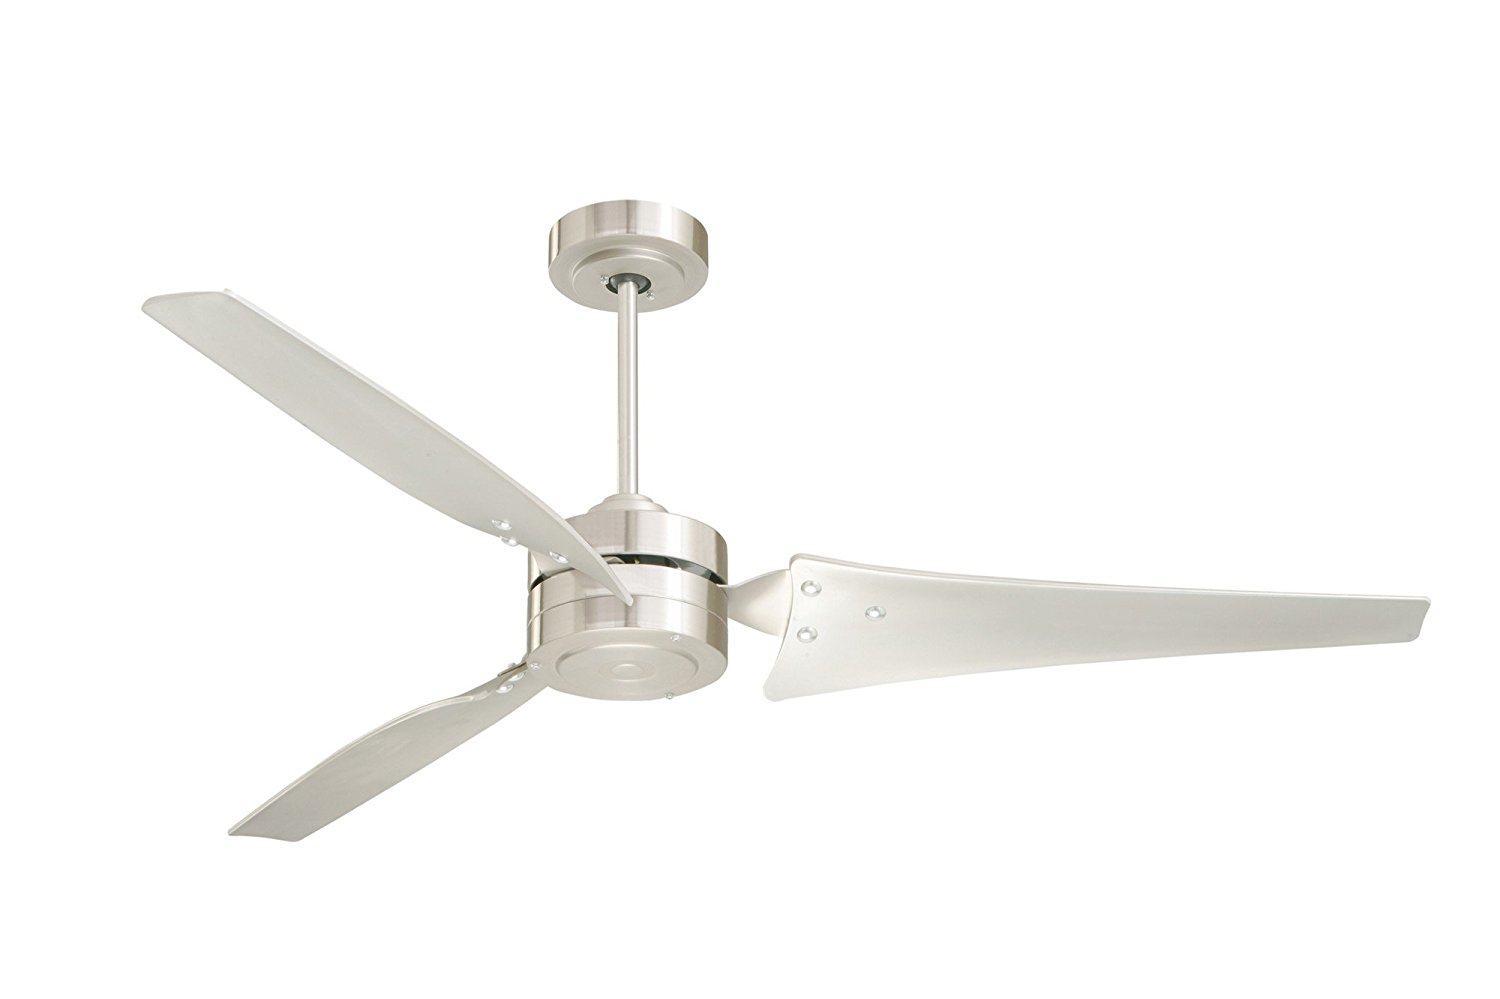 Cheap outdoor ceiling fan find outdoor ceiling fan deals on line at get quotations emerson ceiling fan with 60 loft 3 blade in brushed steel great for indoor aloadofball Images